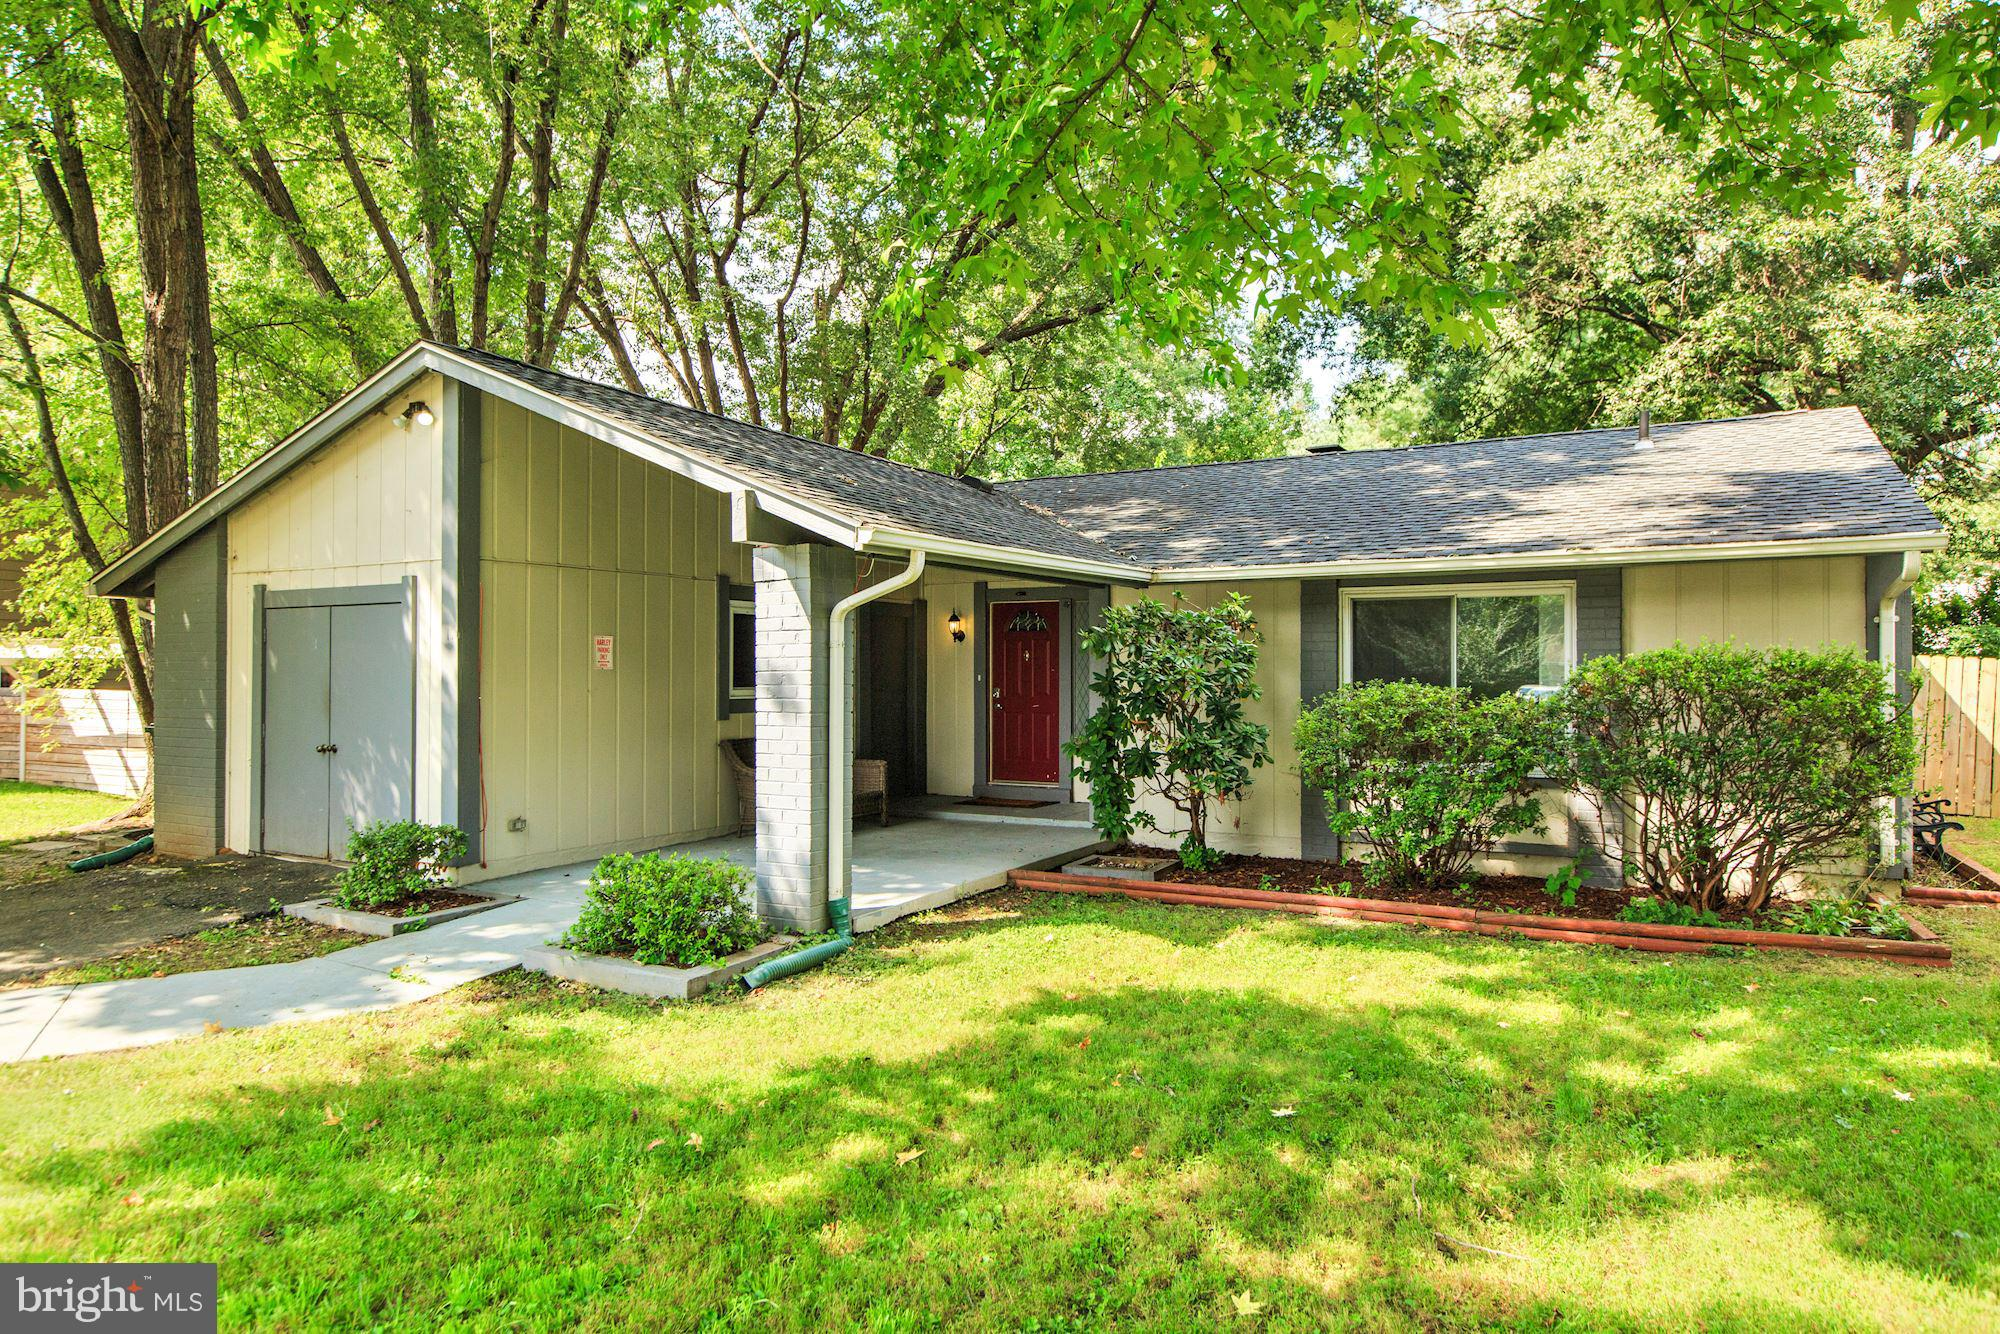 Sunfilled home in Stoneybrook w/ HW floors, picture windows, & tons of natural light. Updated KIT w/ SS appliances, charming breakfast room w/ barn door to family room. One level living w/ 3 BR 1 BTH + wonderful in-law suite w/ 1-bed &1-bath. Living room w/ vaulted ceiling & wood burning fireplace. Spacious wrap around deck & LG yard. Close to Kingstowne Towne Cntr, Parks, Telegraph Rd, Rt 1 & 495